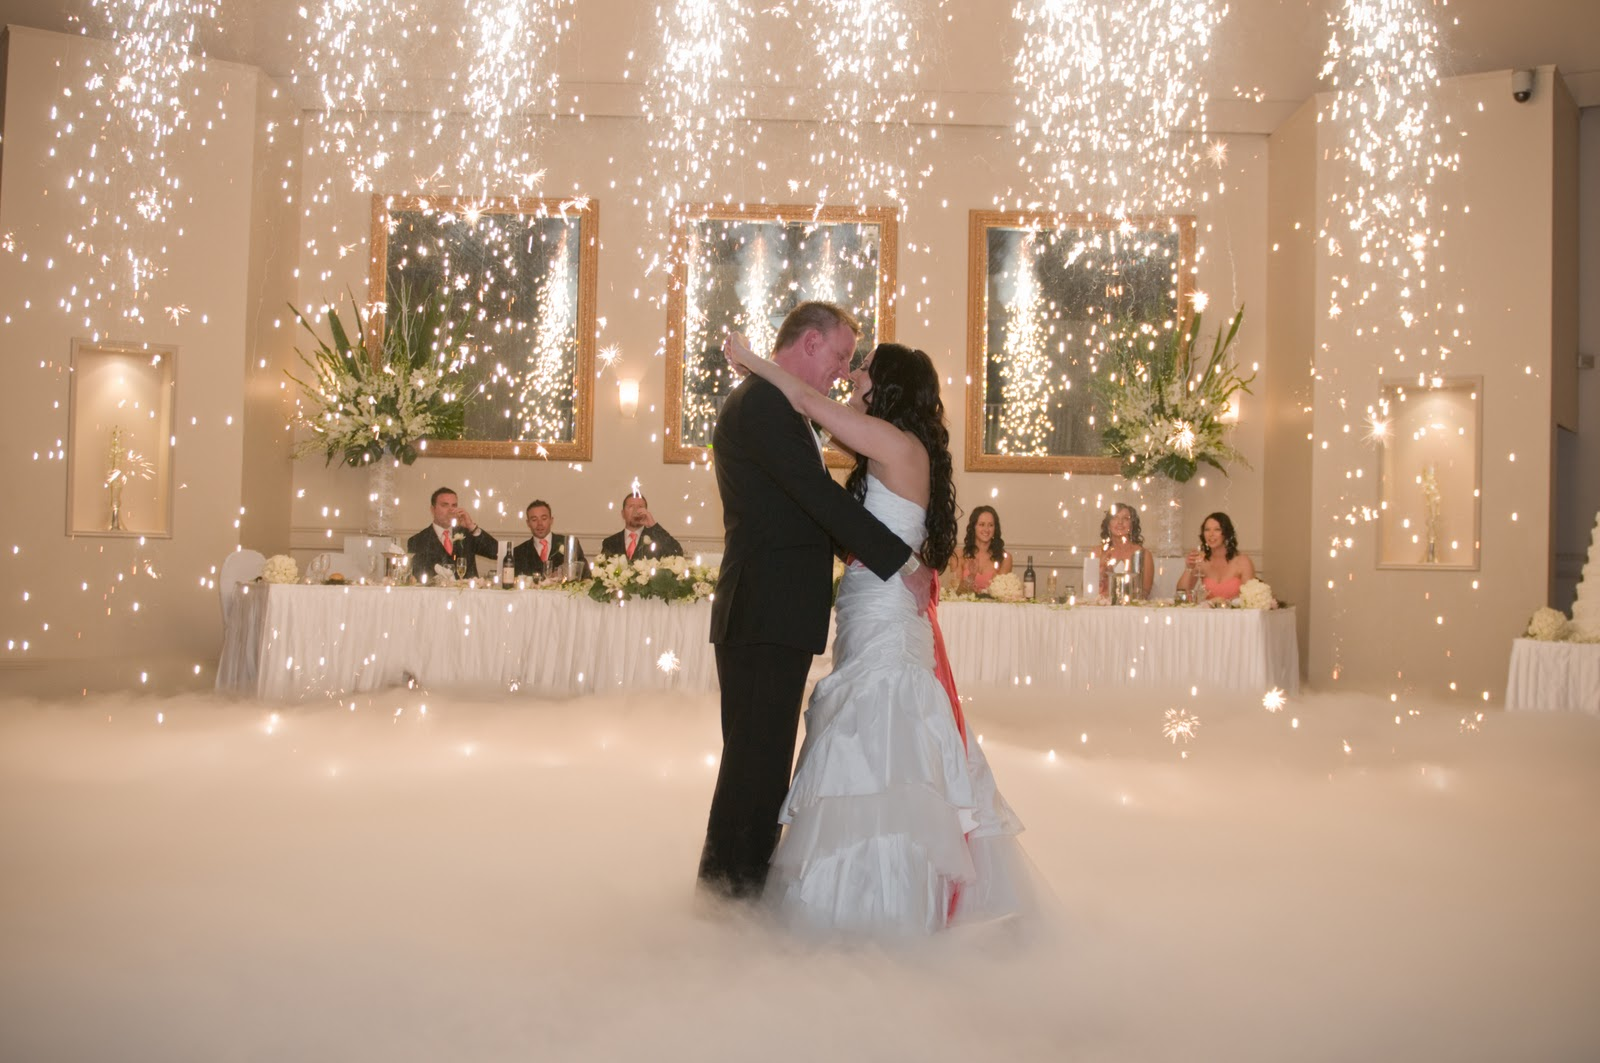 Special Effects For Your Wedding